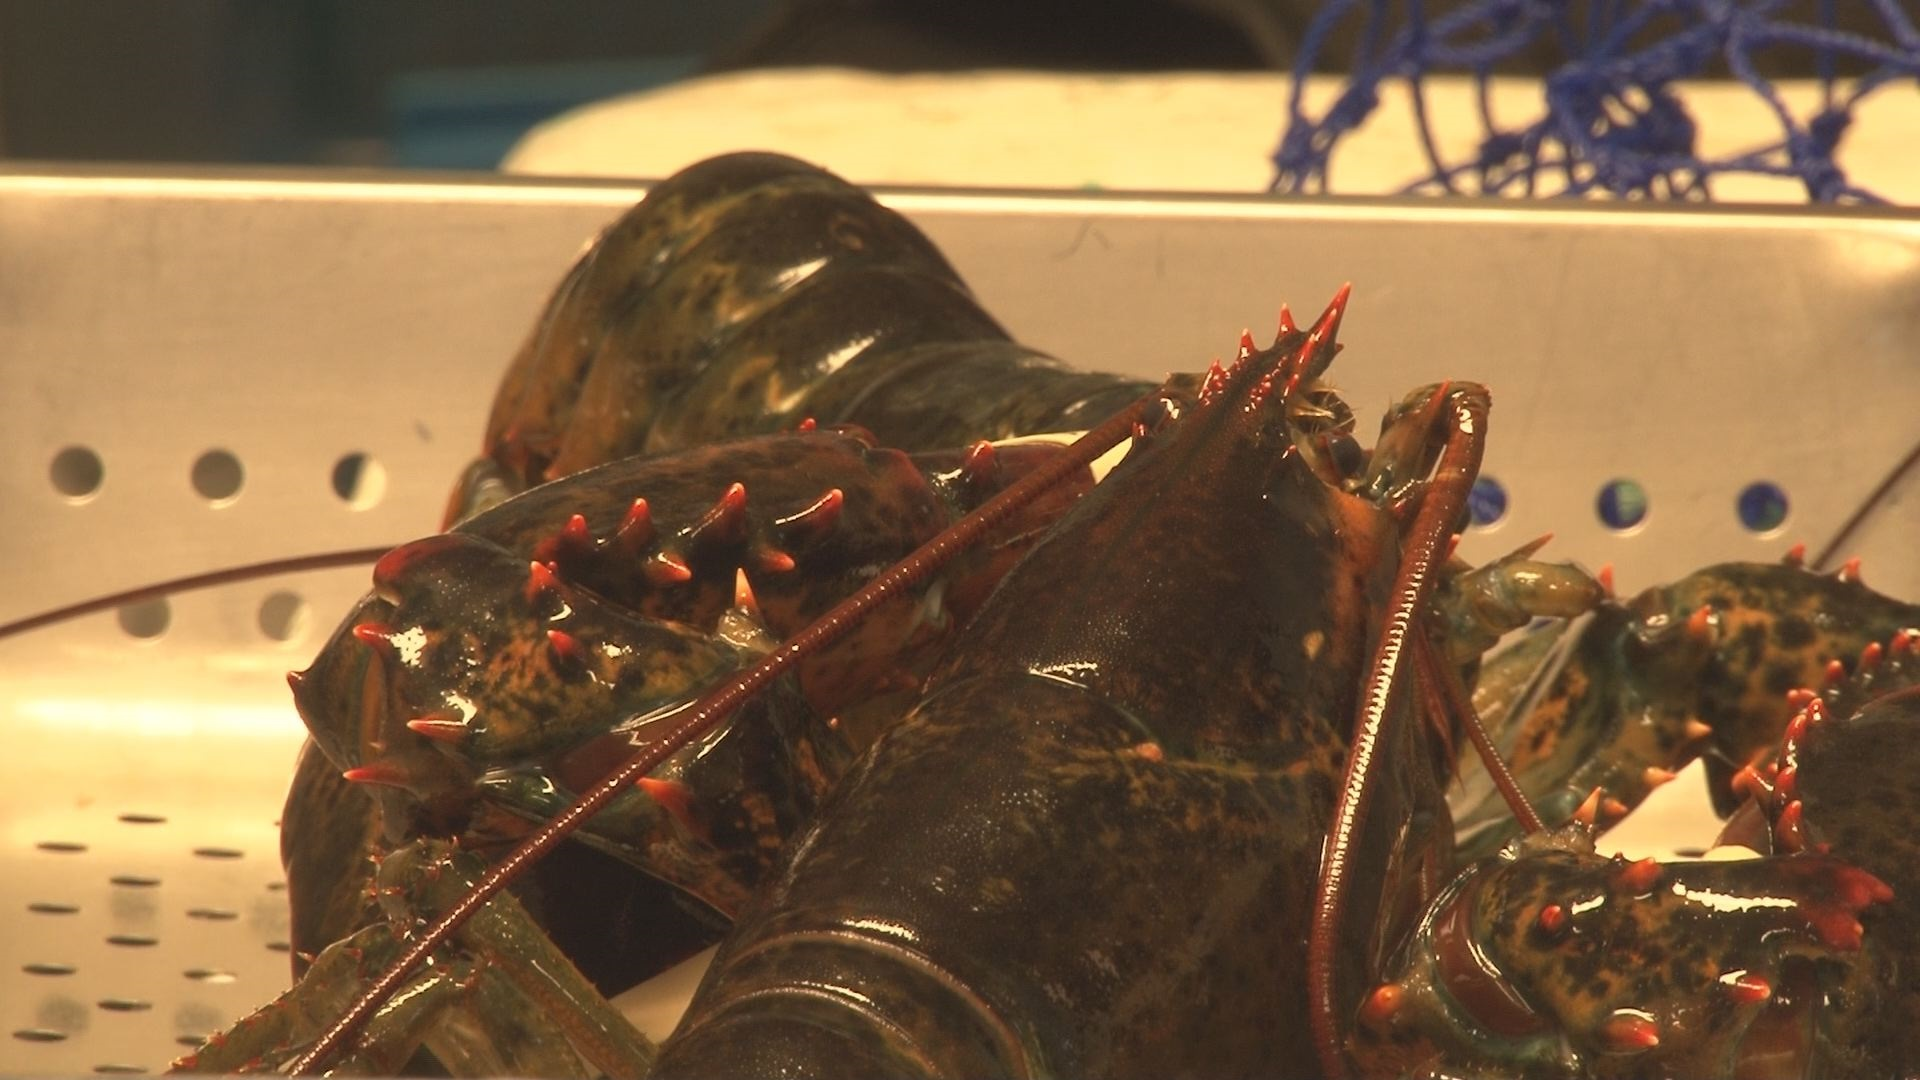 Rings in stomach could be key to telling lobsters' ages   WLBZ2.com